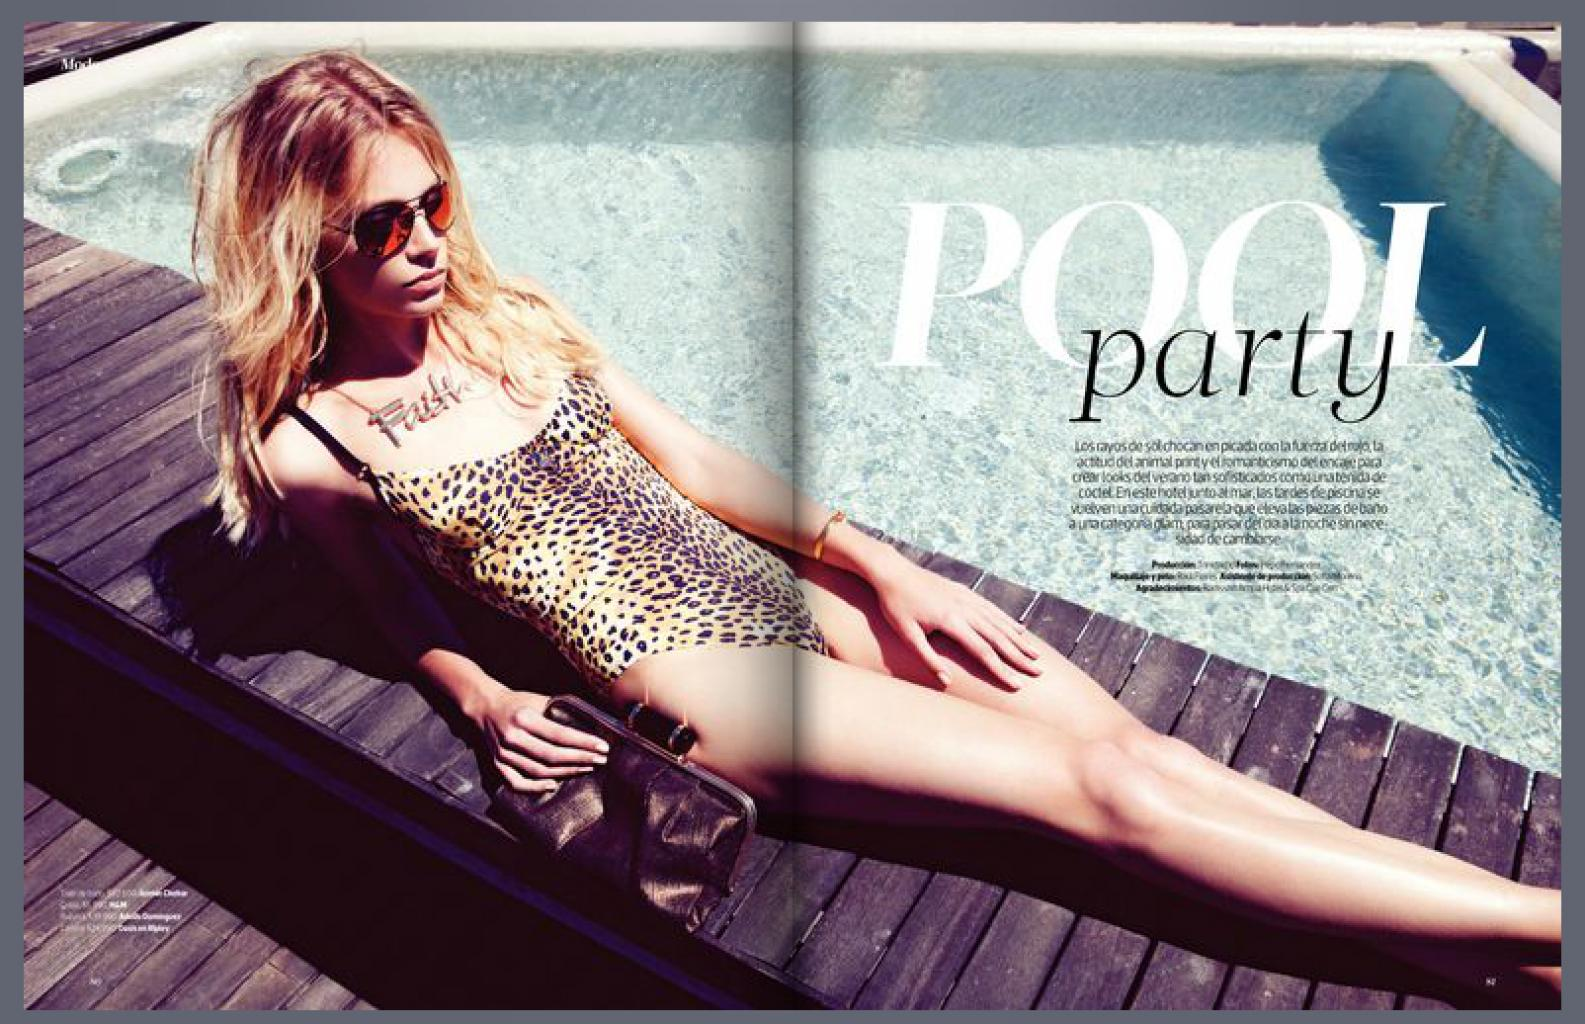 Coco Reher - mujer mag dec 2013 pool party.jpg